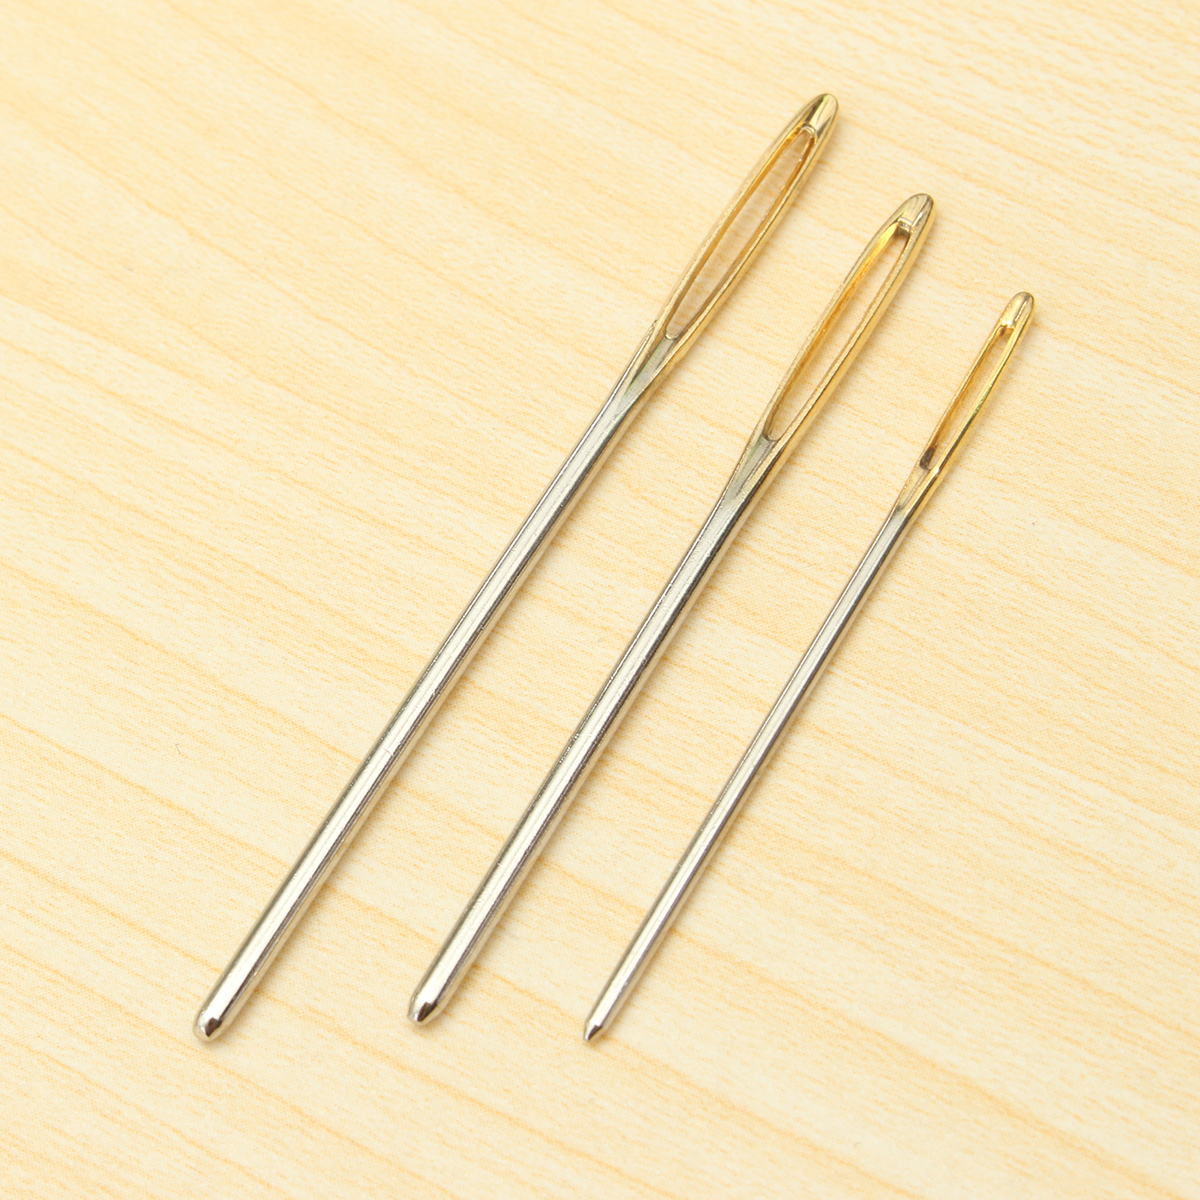 18Pcs 3 sizes Large Knitting Sewing Needles Gold Eye Needle Embroidery Tapestry DIY Tools